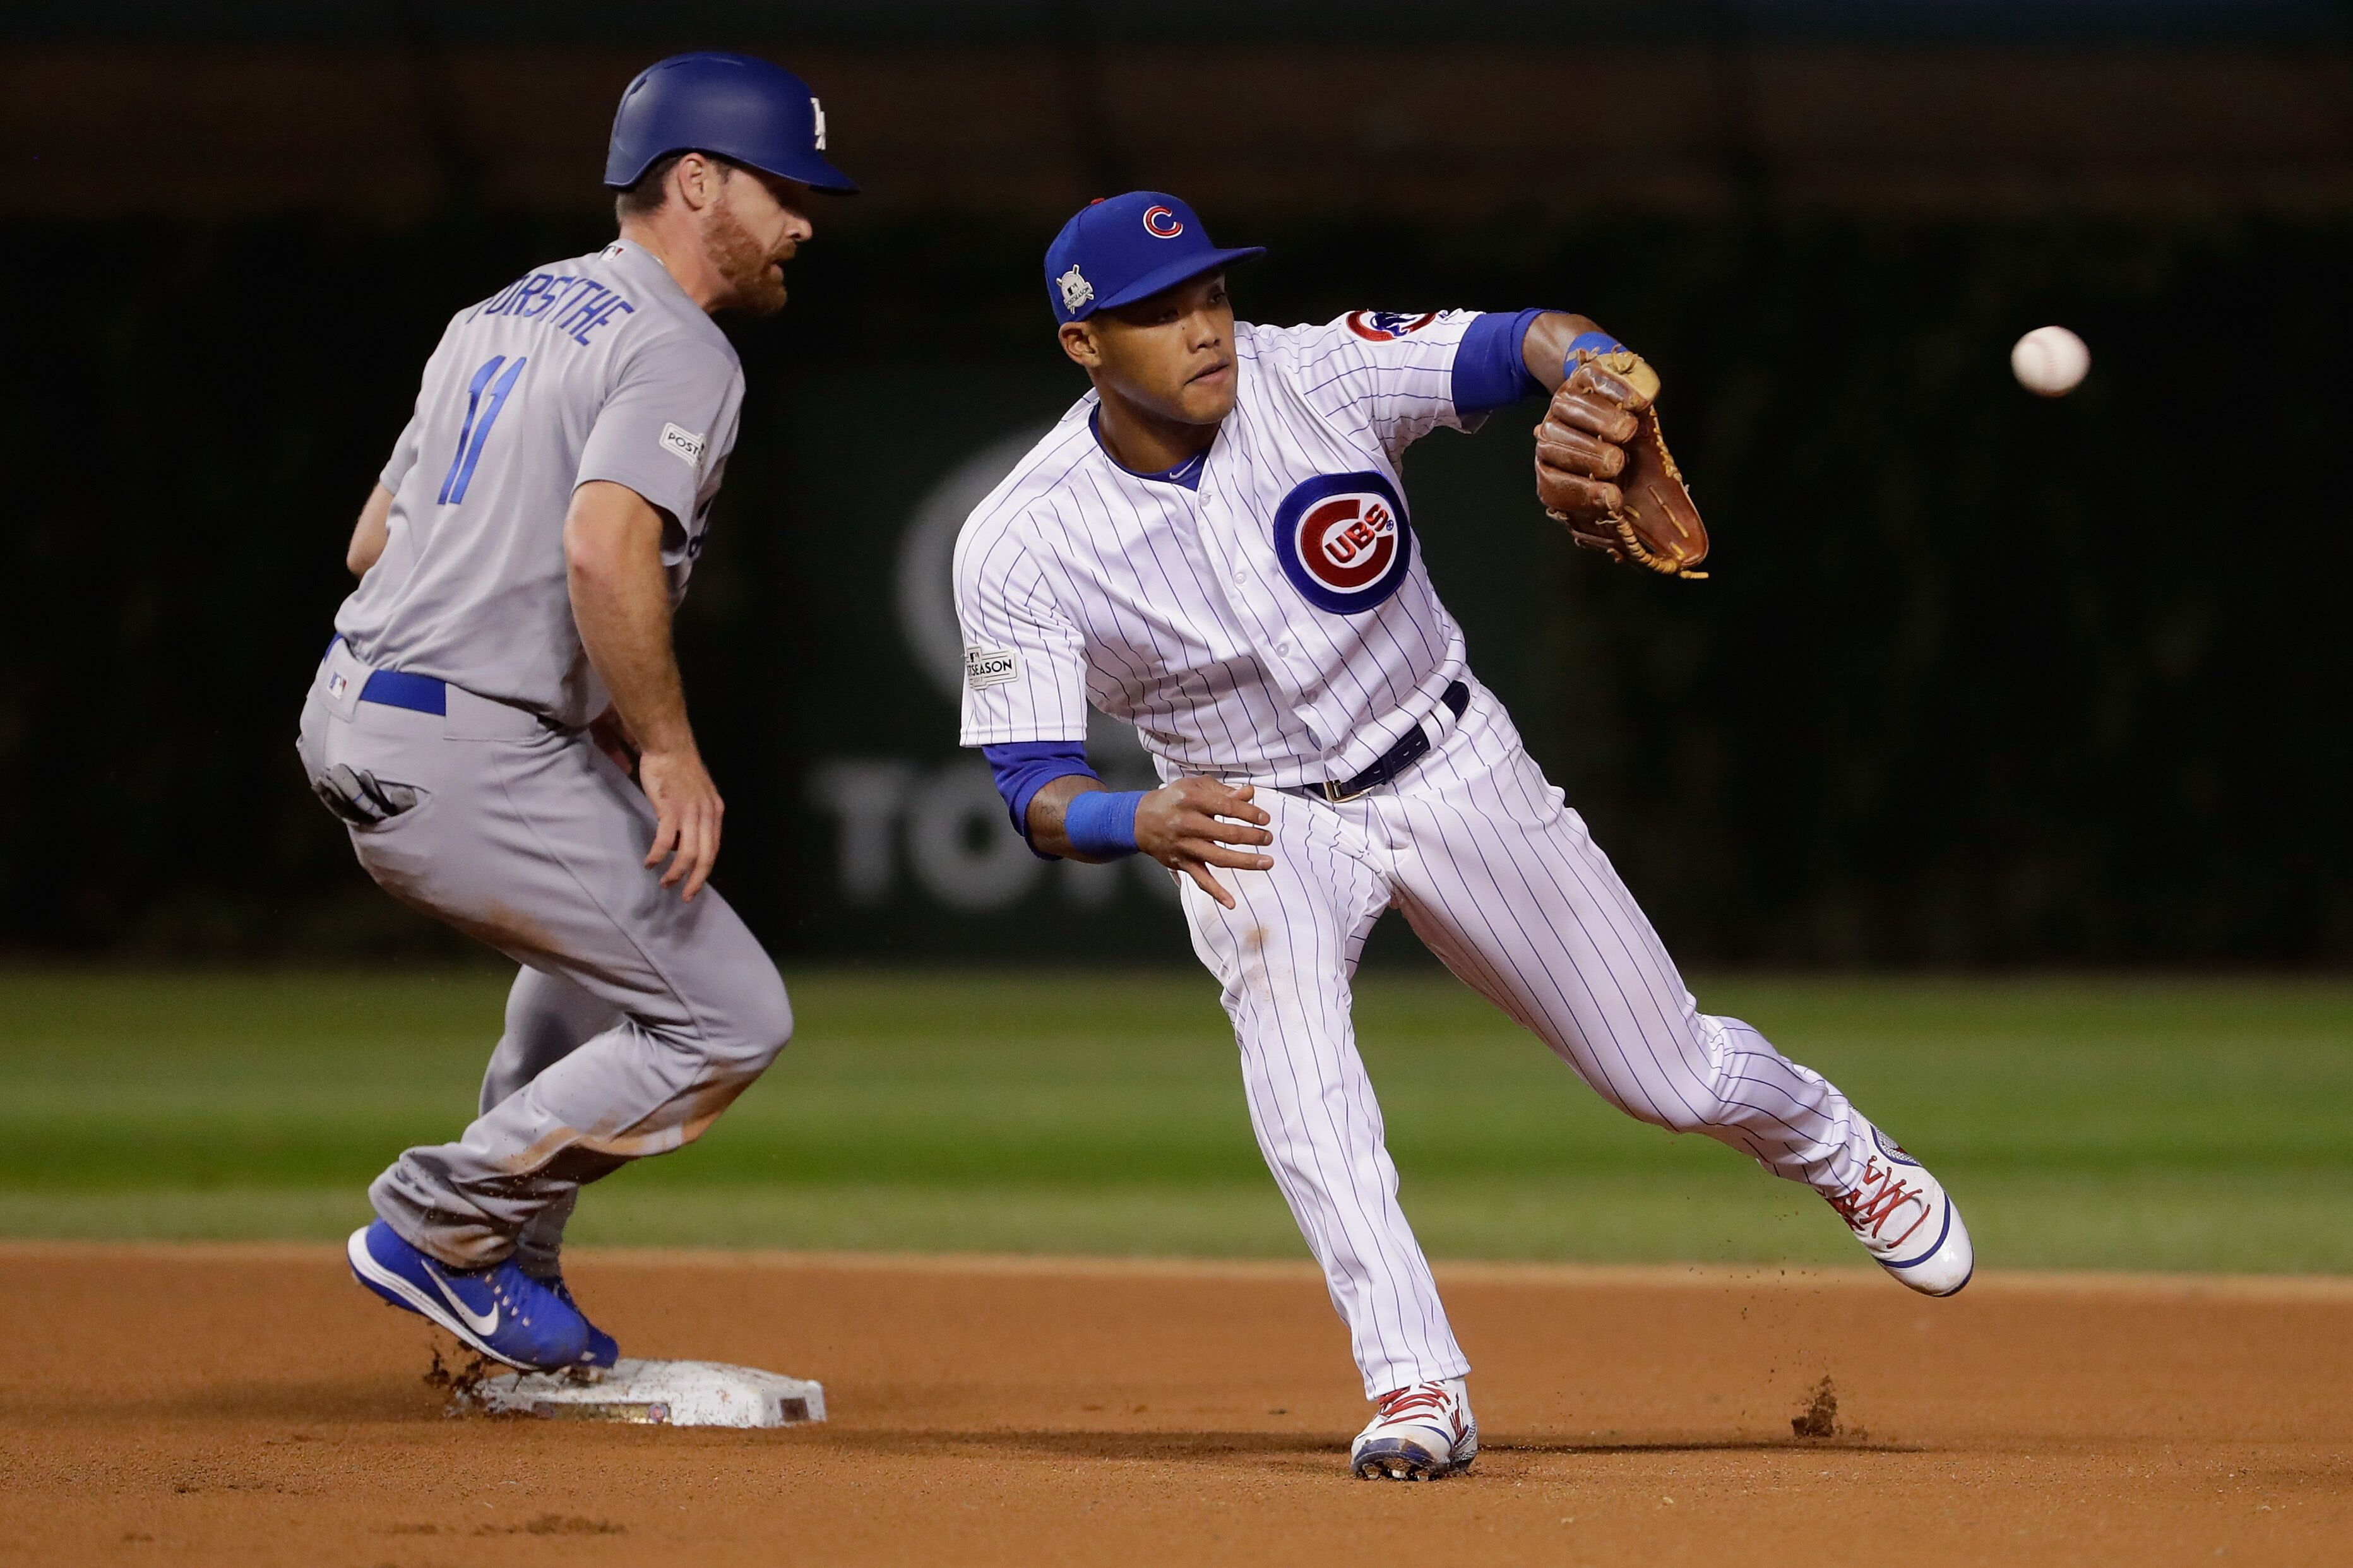 862595894-league-championship-series-los-angeles-dodgers-v-chicago-cubs-game-three.jpg